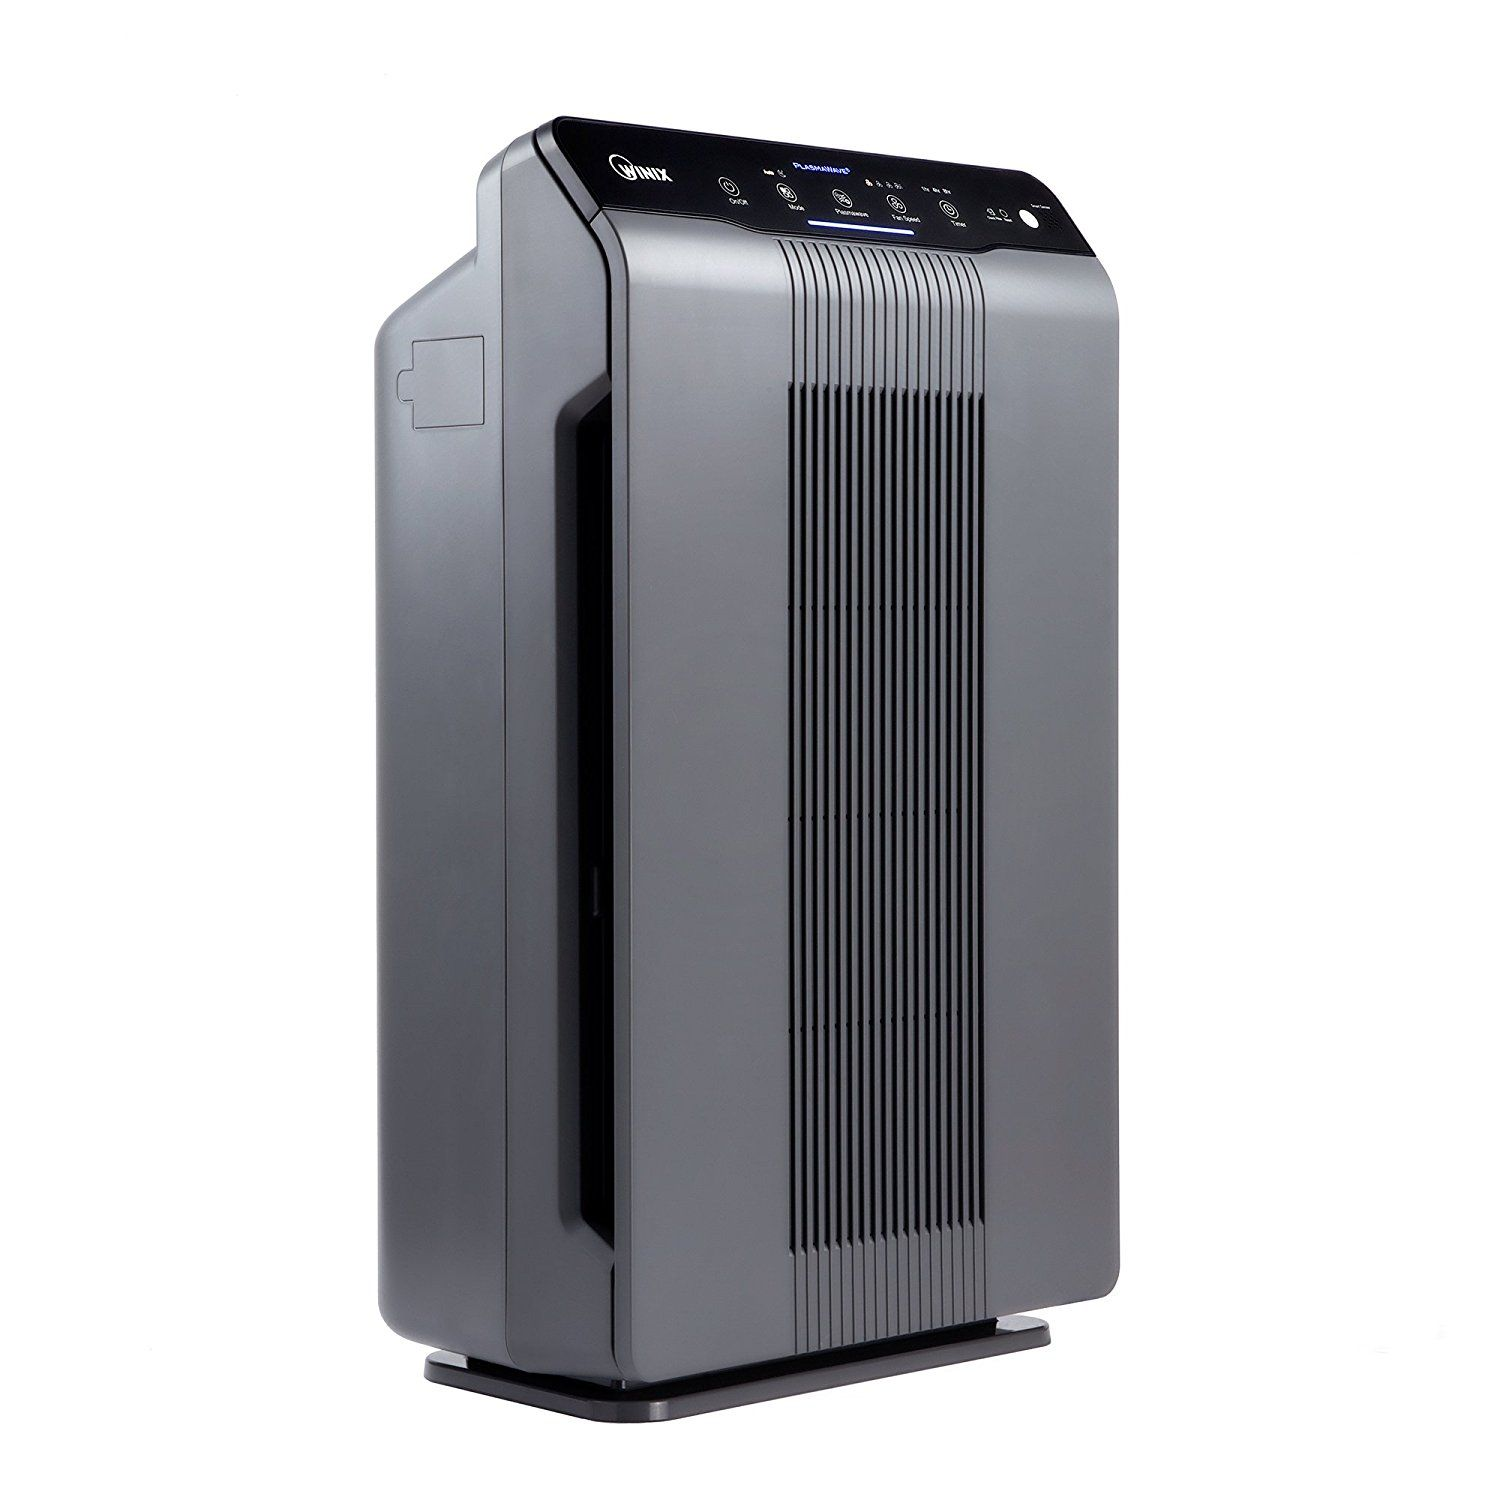 Winix 53002 Air Purifier with True HEPA